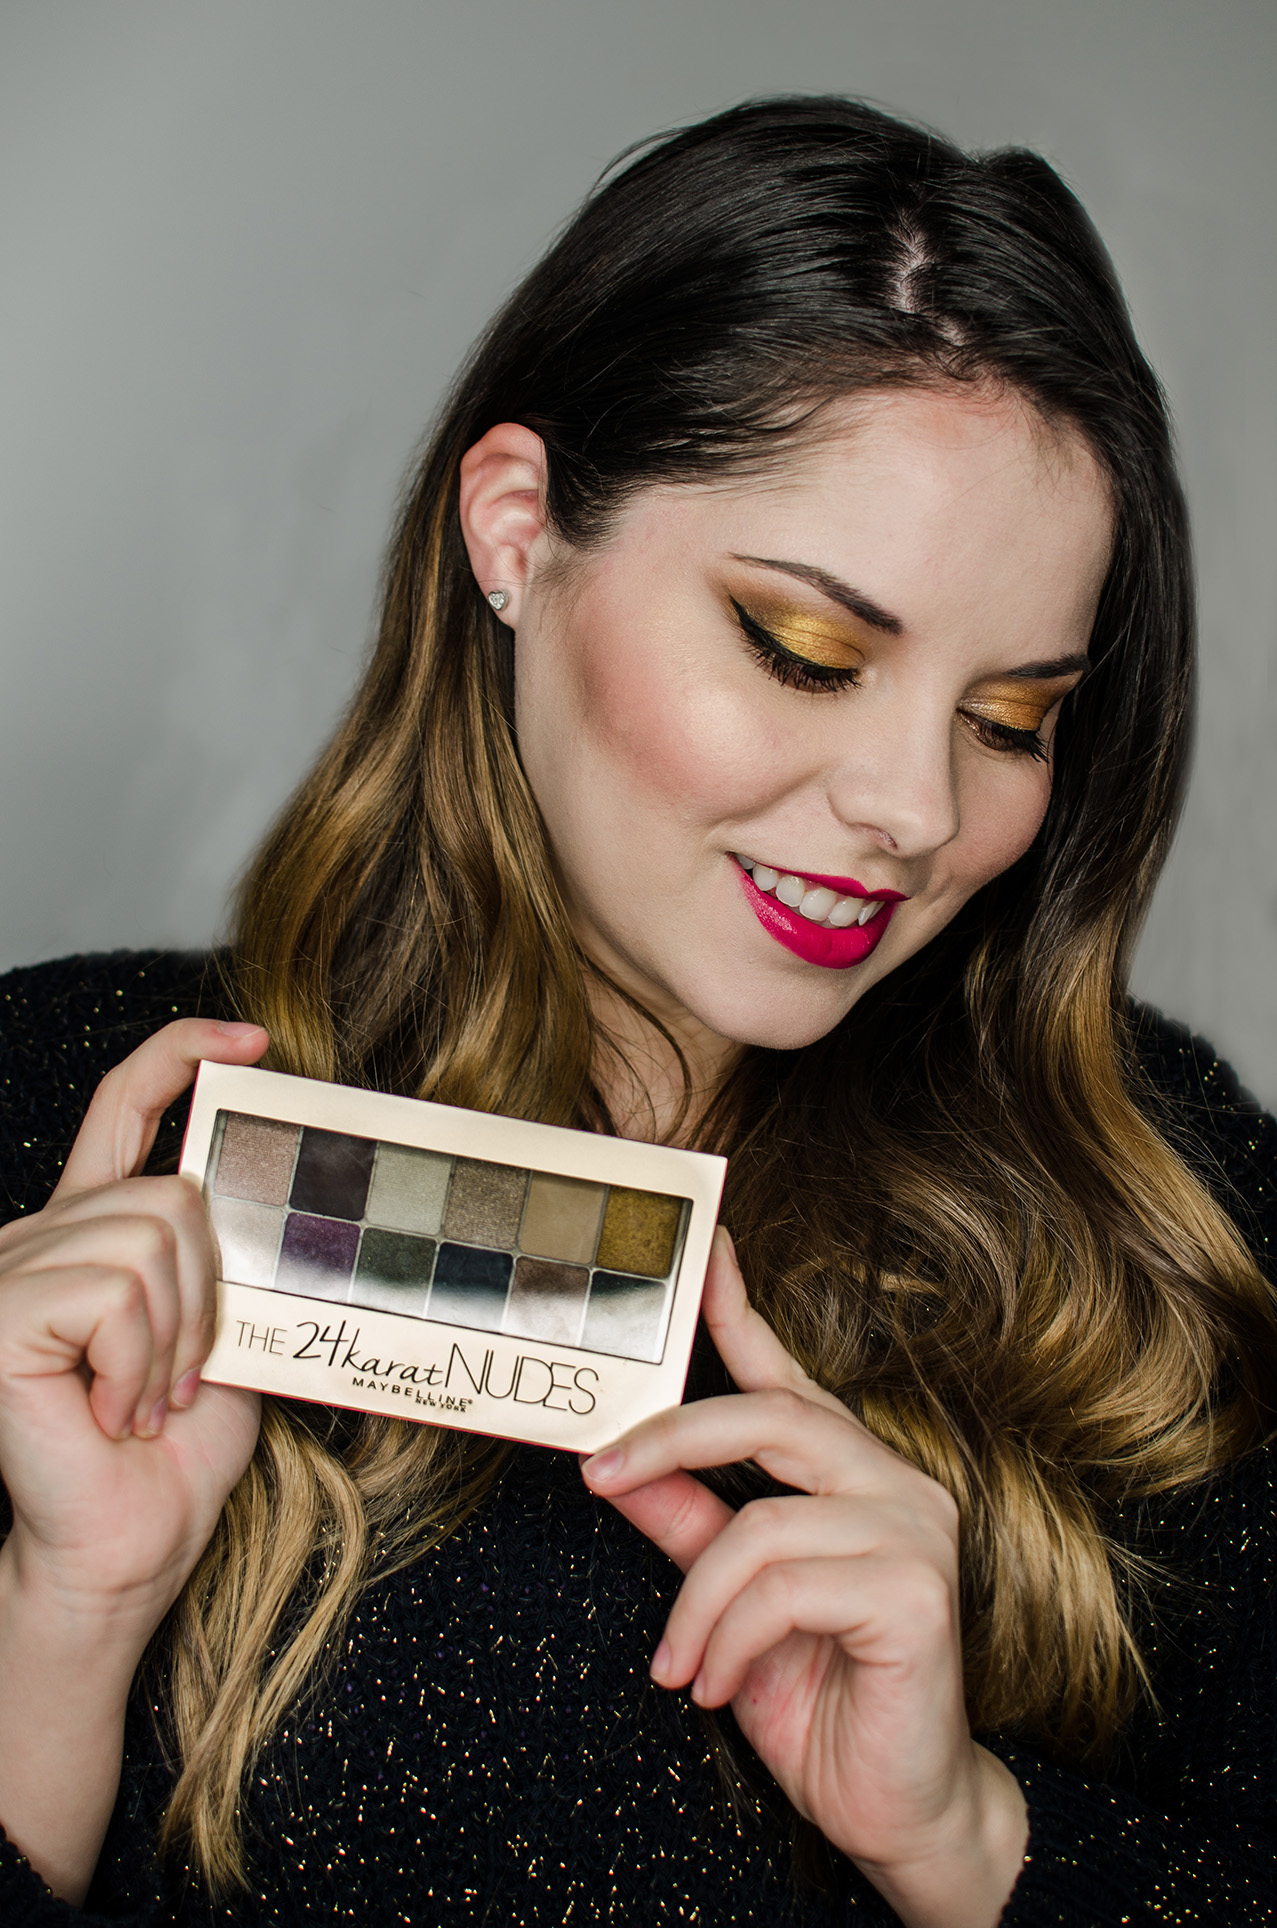 maybelline 24 k NUDES palette review and swatches anotherside of me blog